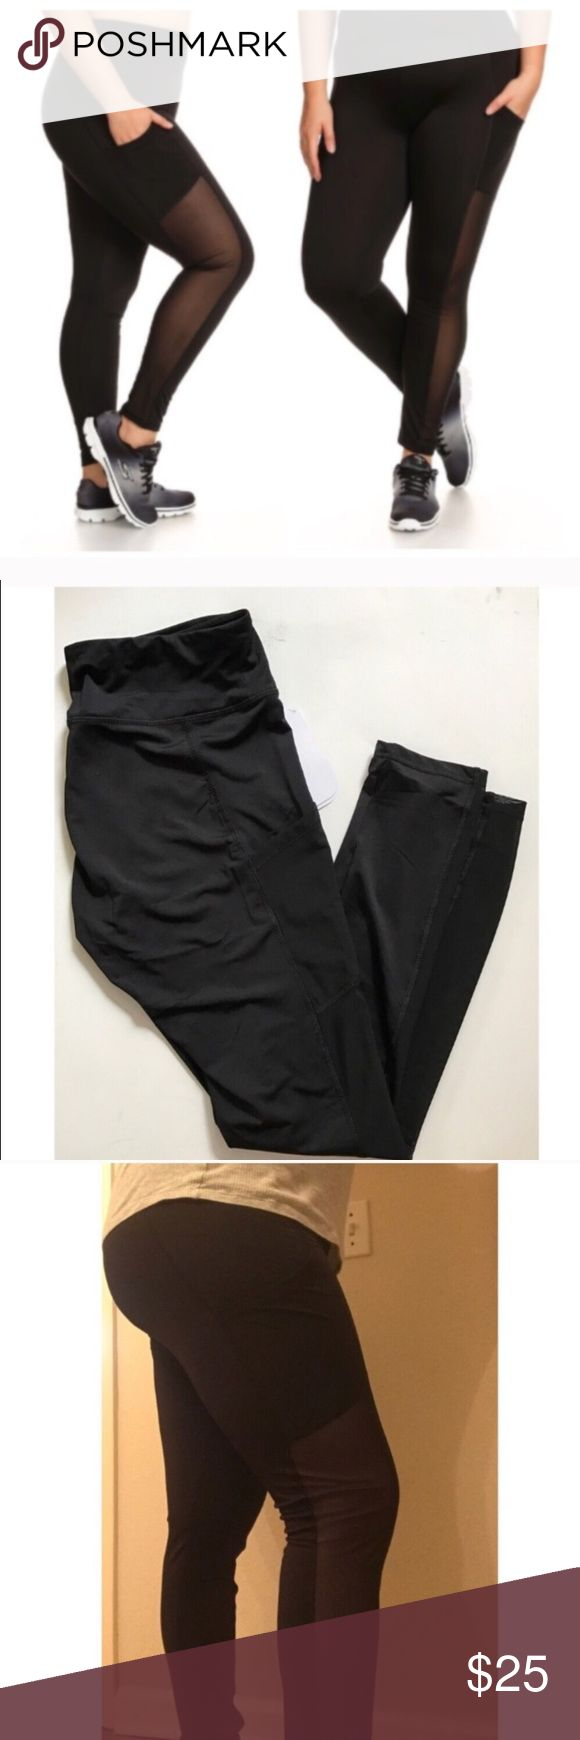 """(Plus) Black mesh athletic pants Black mesh panel gym pants. Polyester/ spandex combo. For reference I am a 2x and I'm wearing the 2x and they fit really well overall. I have super small calves so they do not fill out the mesh portion 😭 Fits an iPhone 7 perfectly!  1x: Inseam: 29"""" Waistband: 30-38"""" 2x: Inseam: 29"""" Waistband: 32-40"""" 3x: Inseam: 29.5"""" Waistband: 34-42"""" ⭐️This item is brand new with tags 💲Price is firm unless bundled ✅Bundle offers Availability: 1x•2x • 3•2 Pants Leggings"""